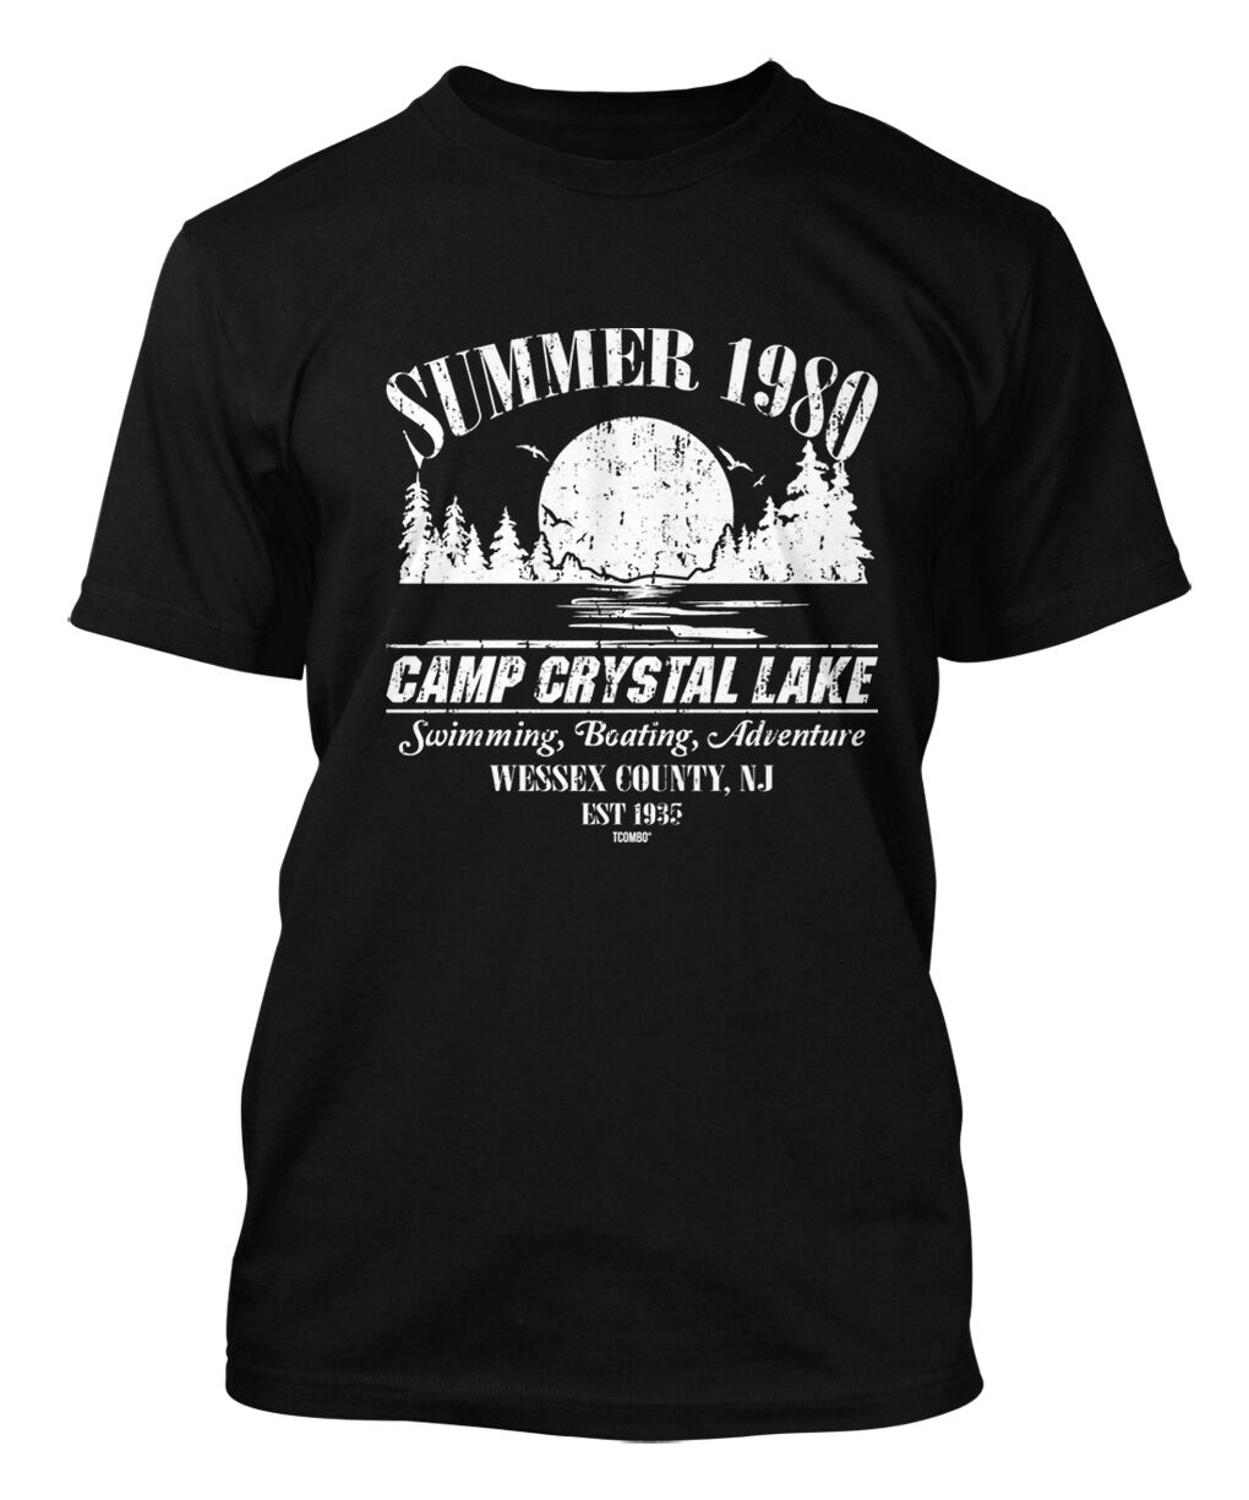 Summer 1980 Camp Crystal Lake Jason Voorhees Horror Movie Men'S T-Shirt 2019 New Fashion Brand T Shirt Fashion Graphic Tees image